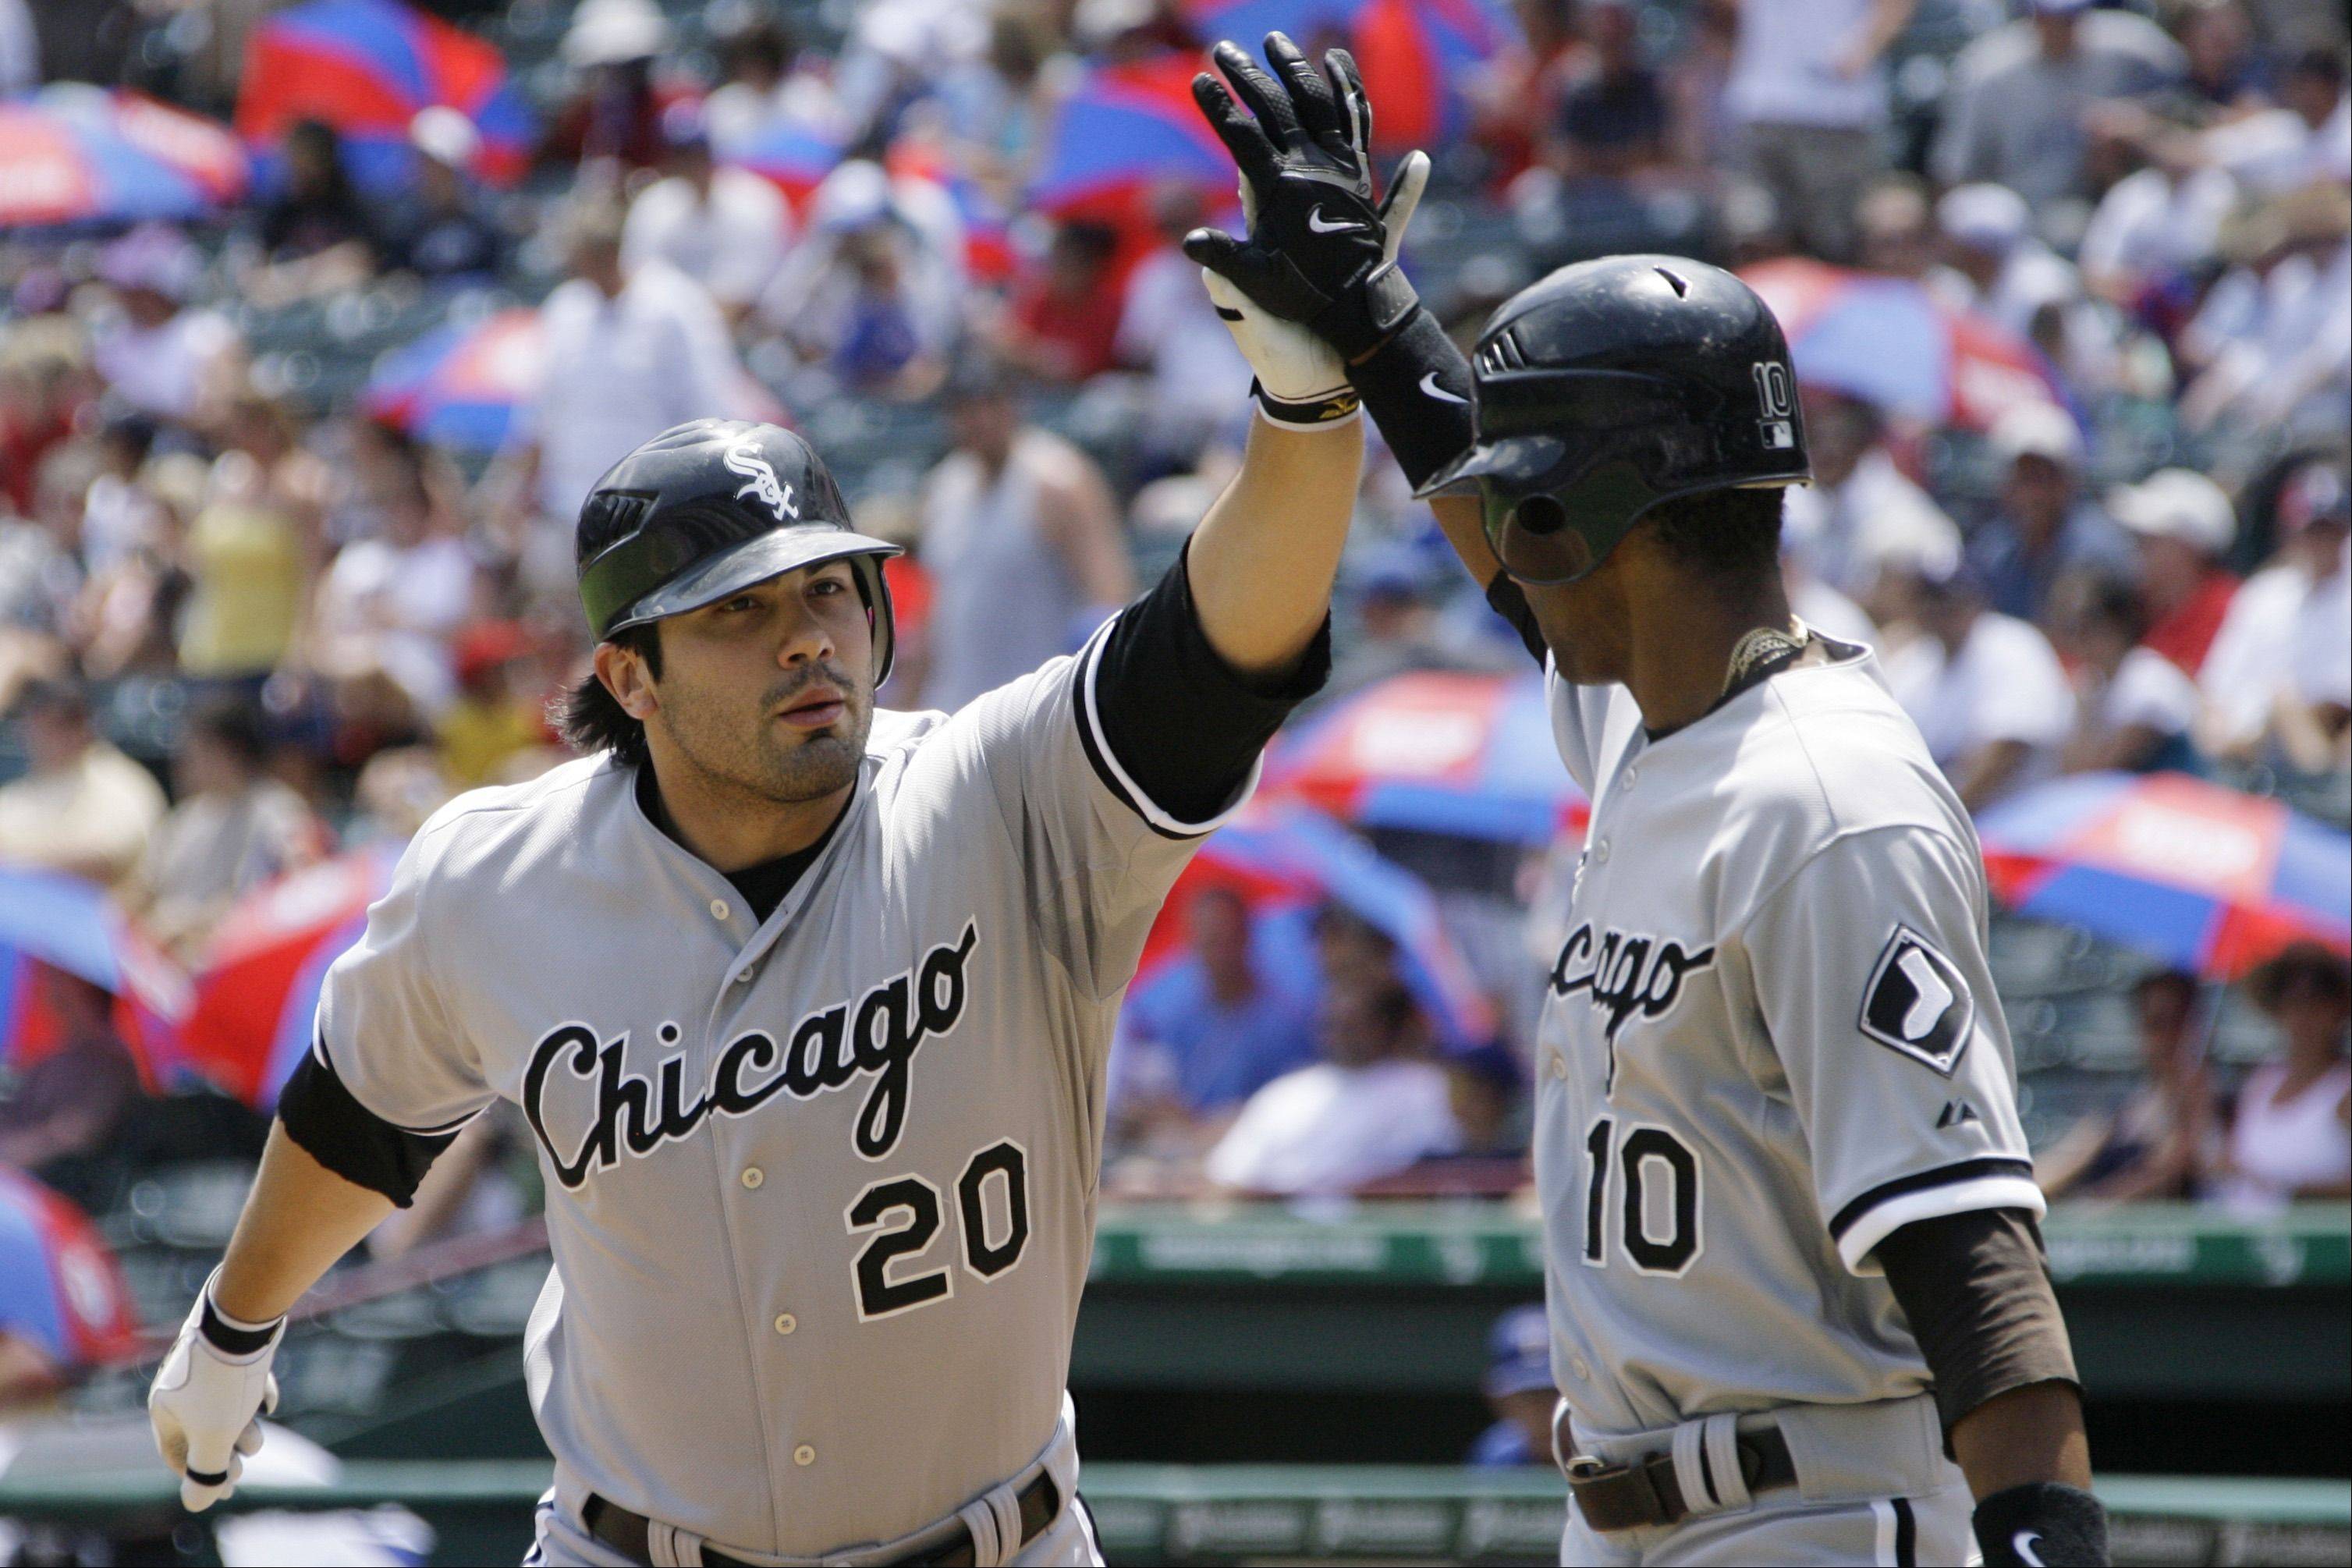 The White Sox activated Carlos Quentin from the 15-day disabled list.